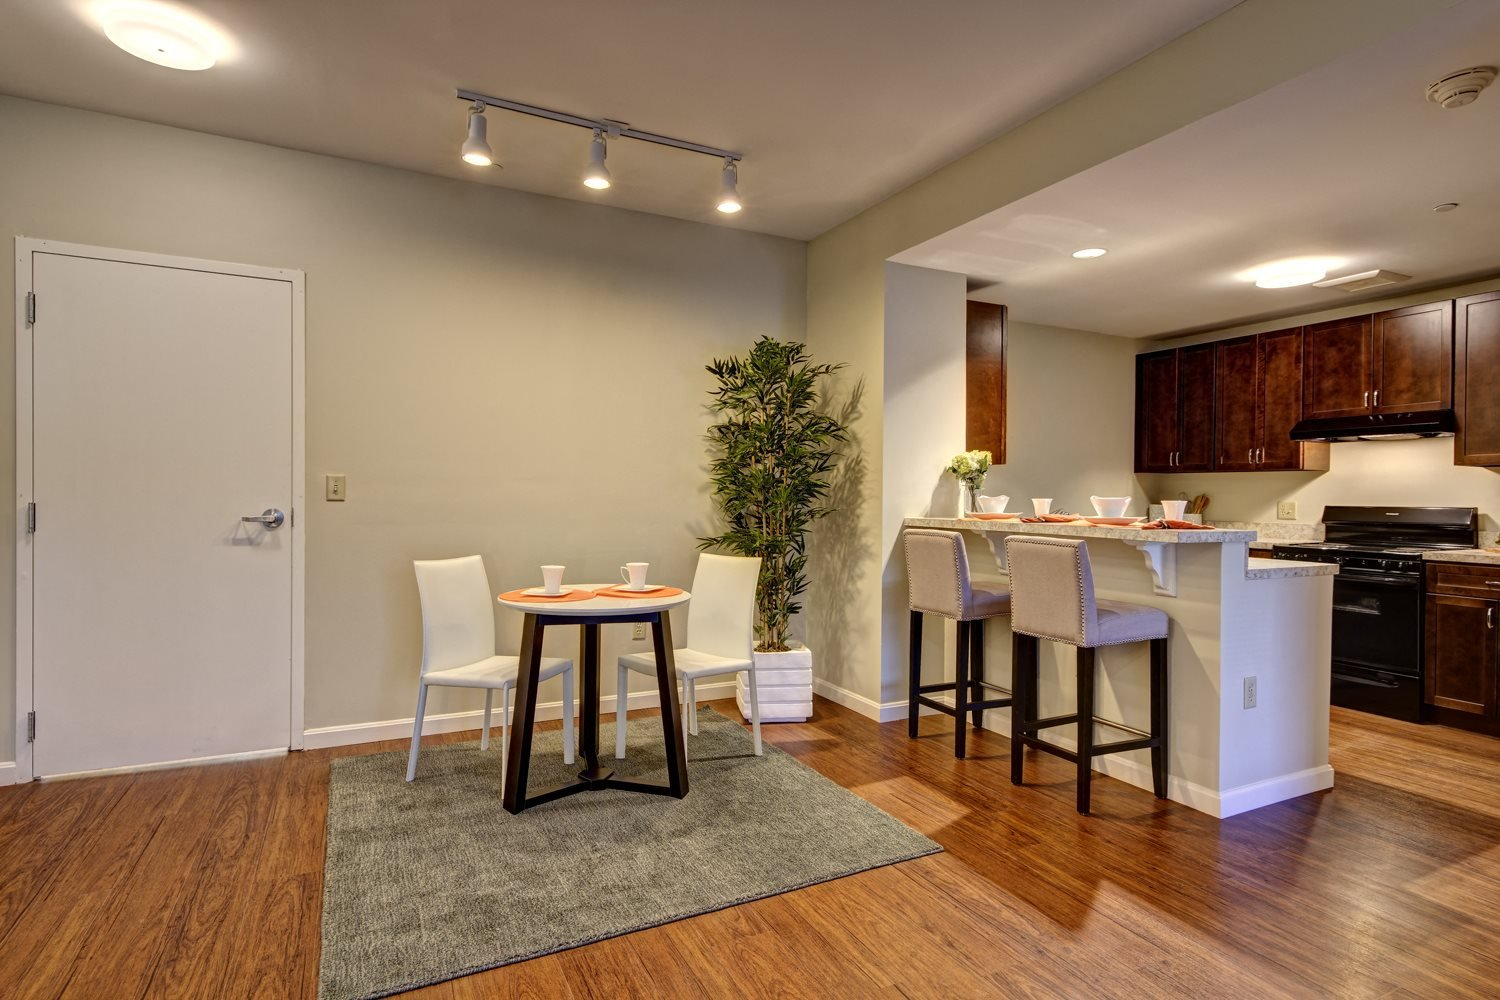 Apartment interior shows modern wood flooring and kitchen featuring a breakfast bar.